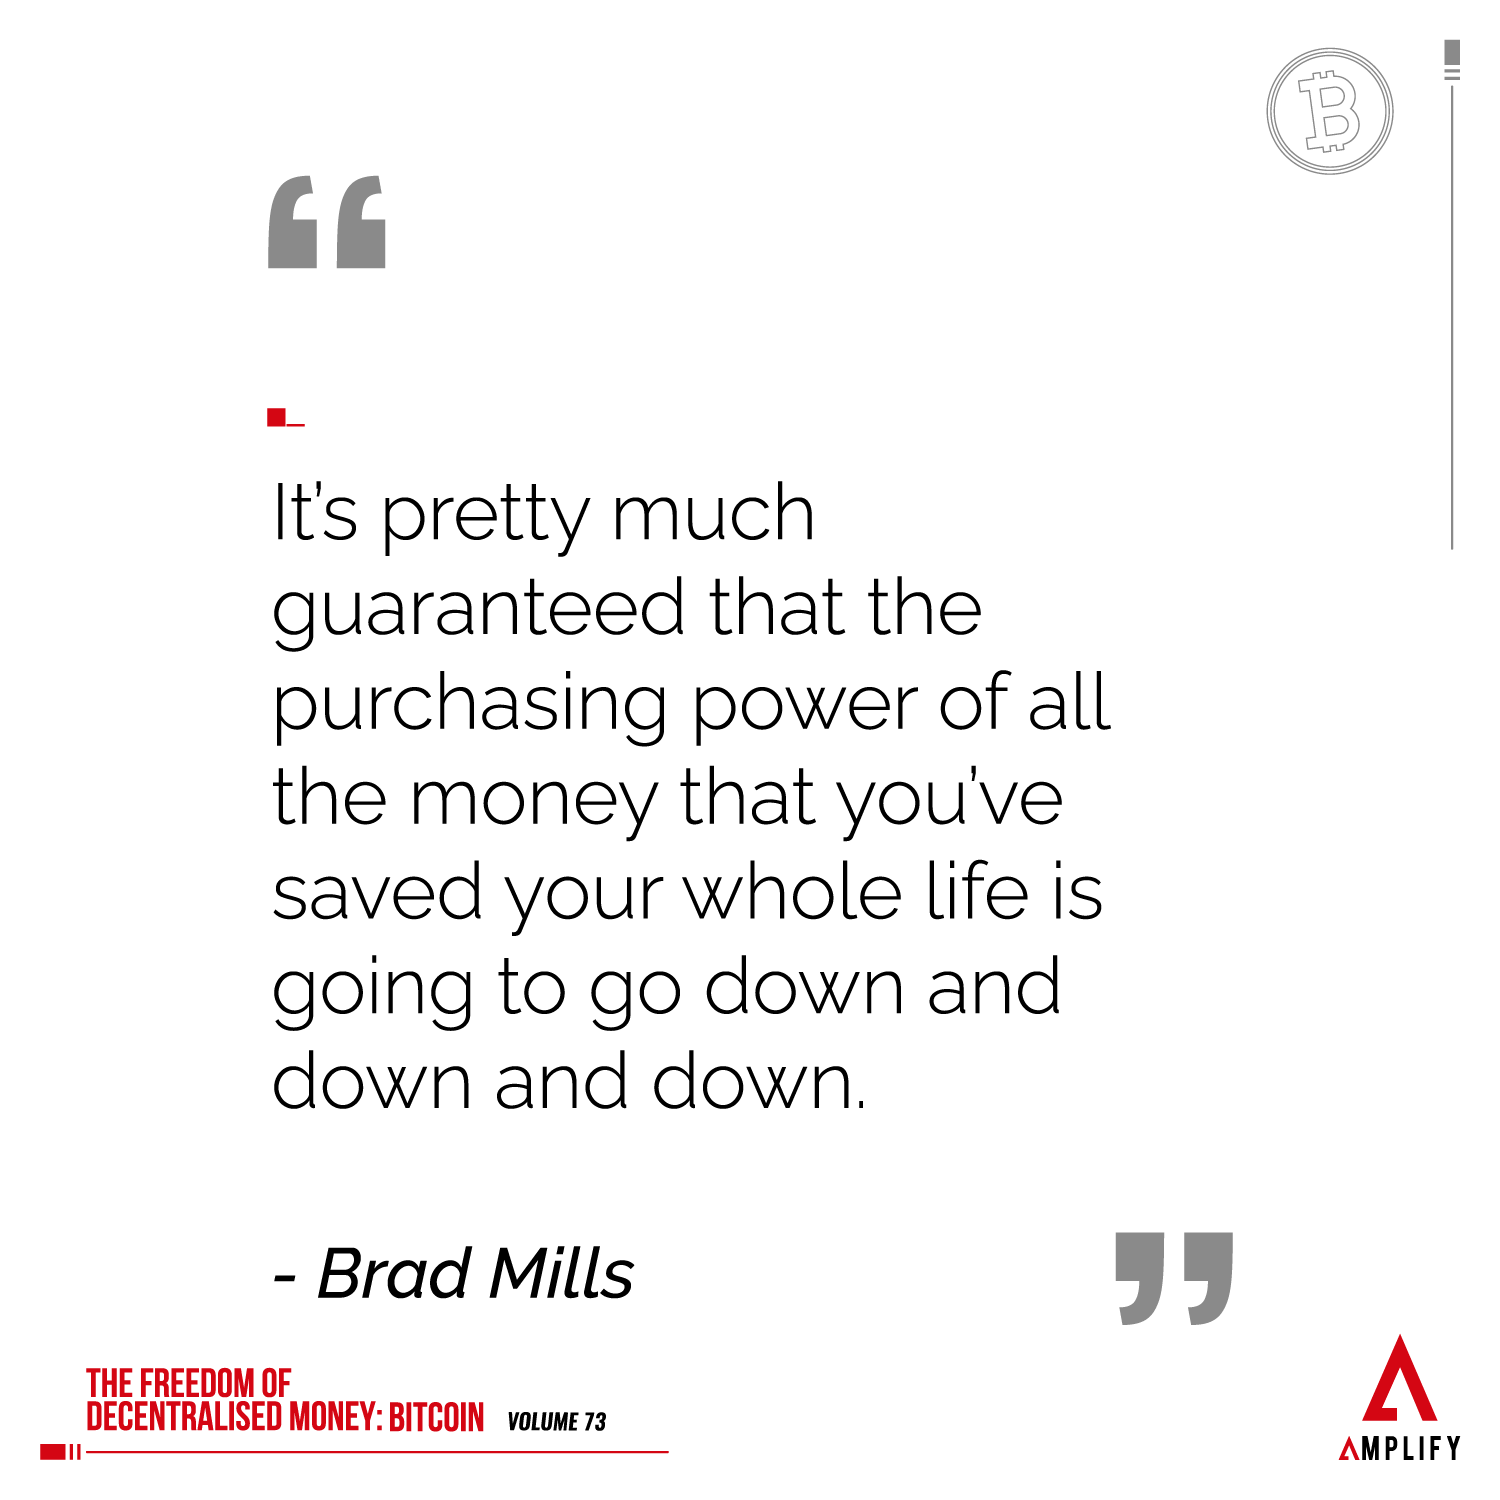 """decorative image with the quote """"It's pretty much guaranteed that the purchasing power of all the money that you've saved your whole life is going to go down and down and down."""" by Brad Mills"""